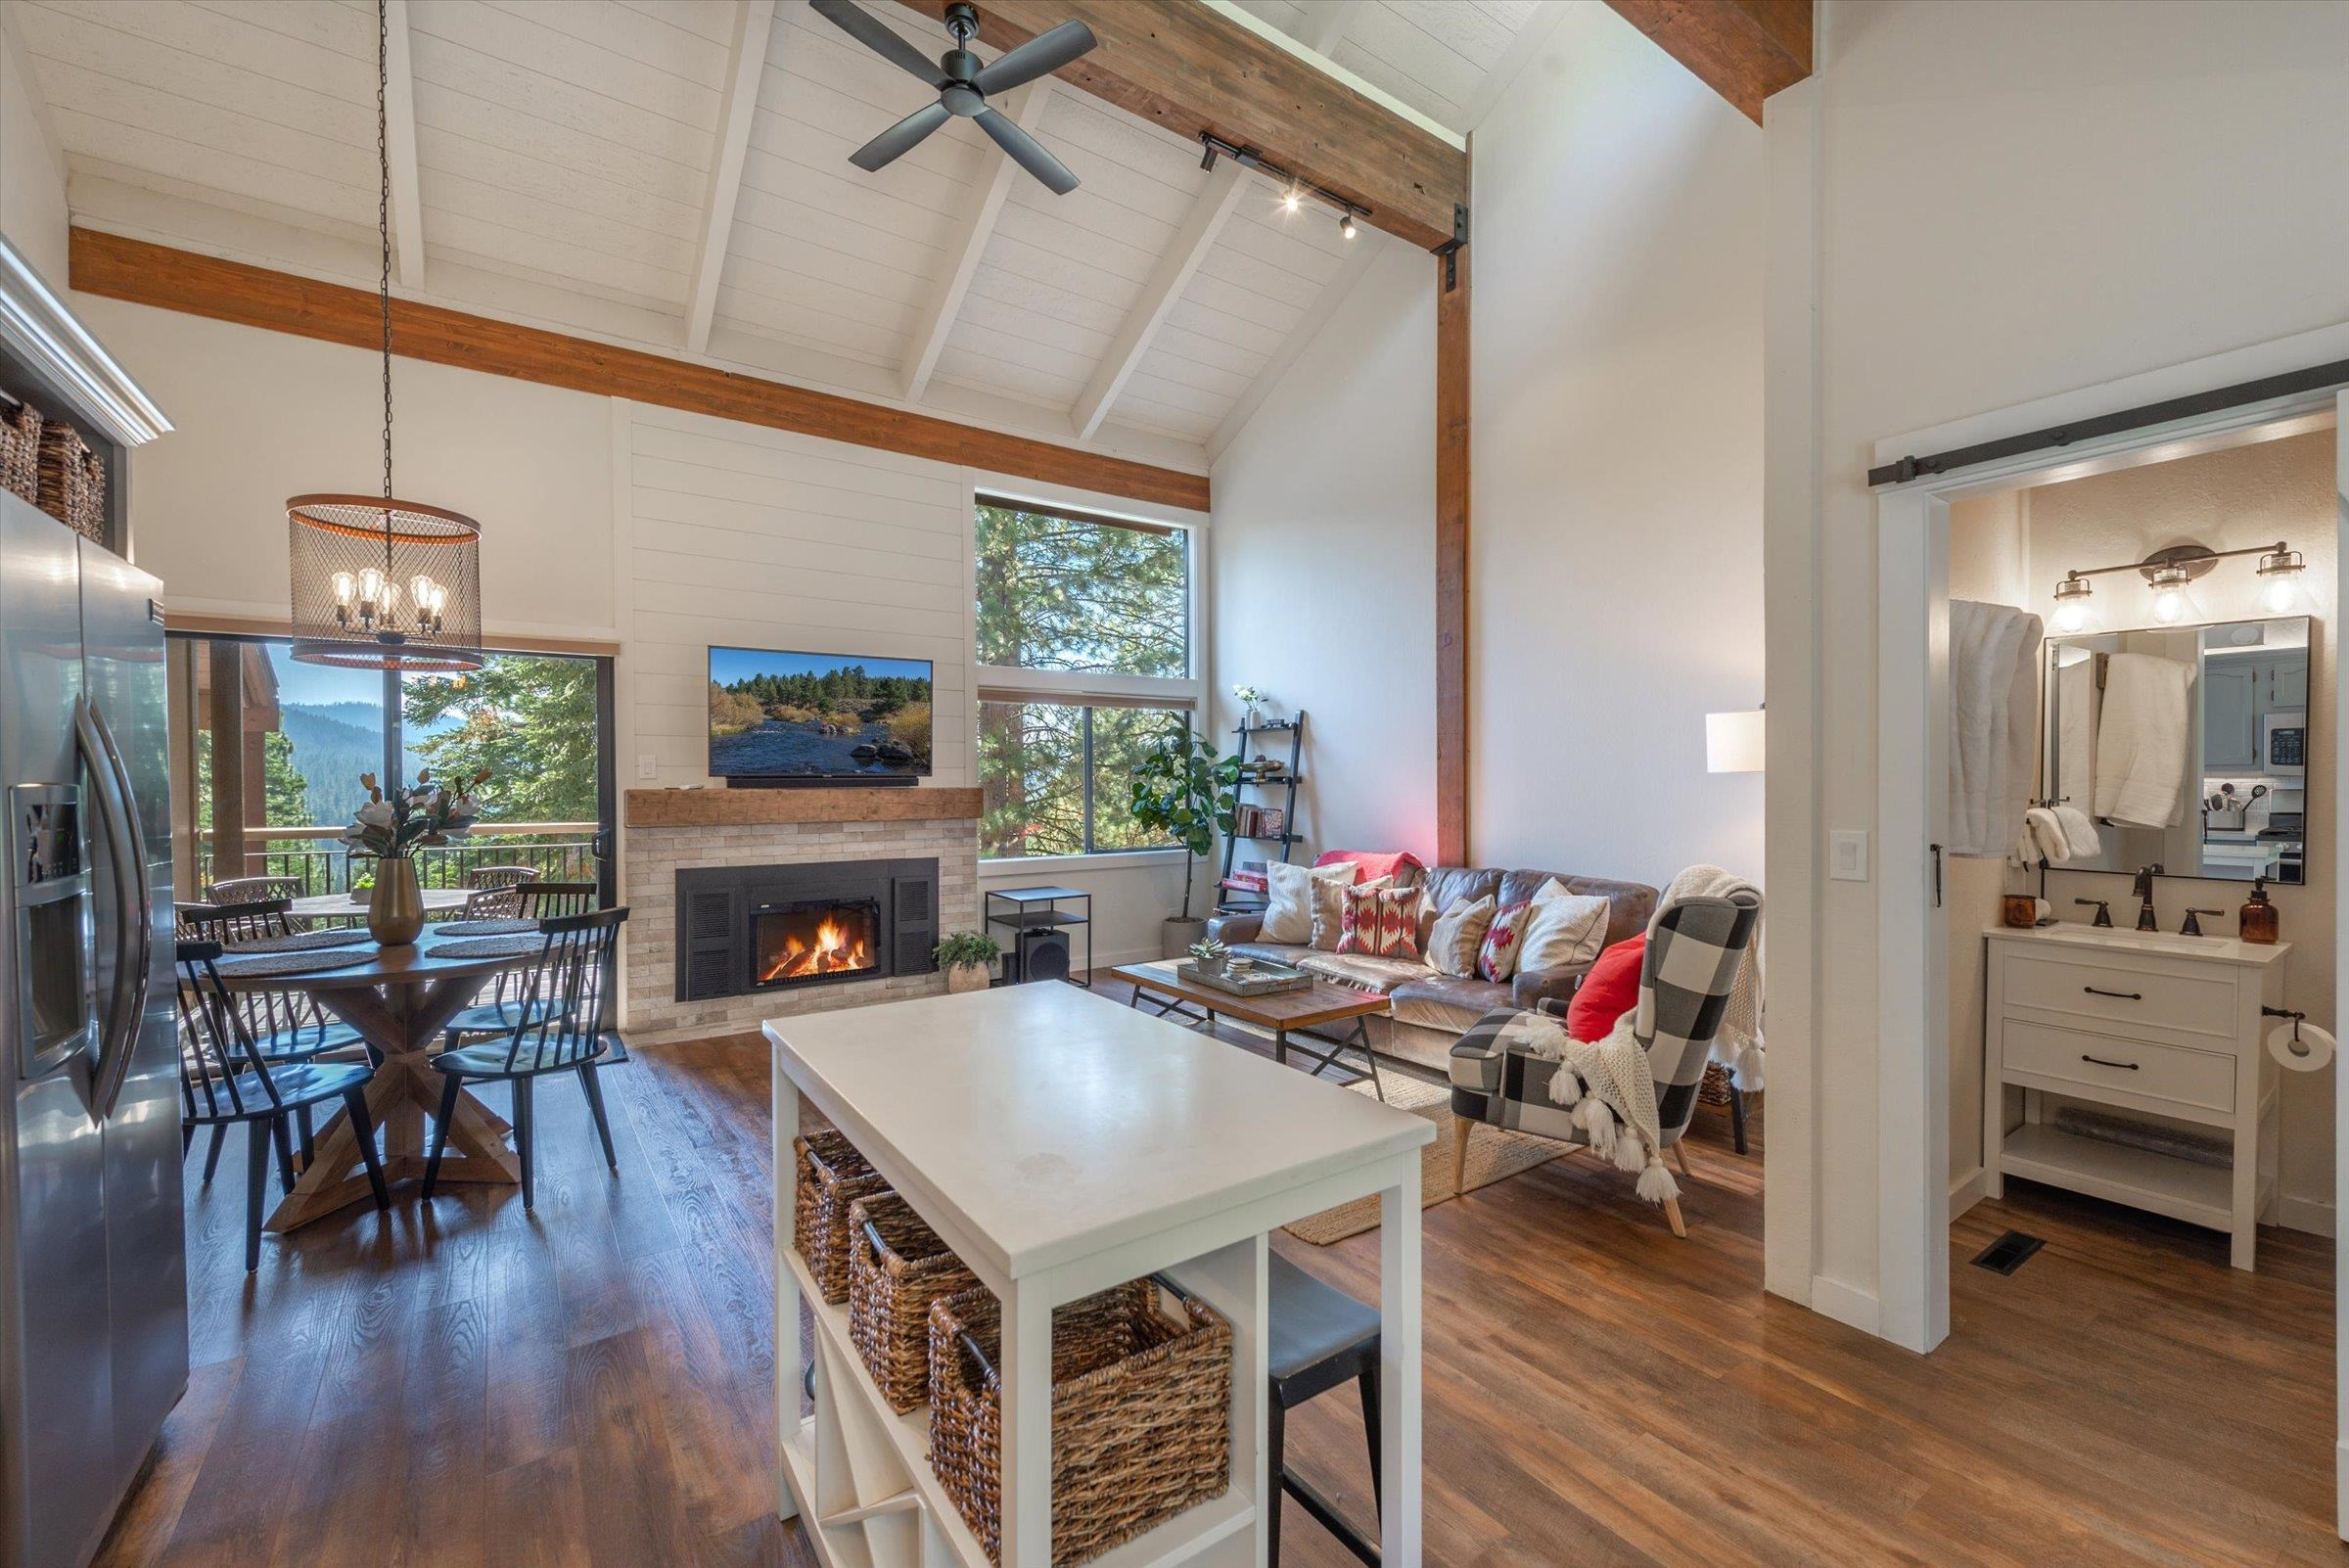 Image for 6034 Mill Camp, Truckee, CA 96161